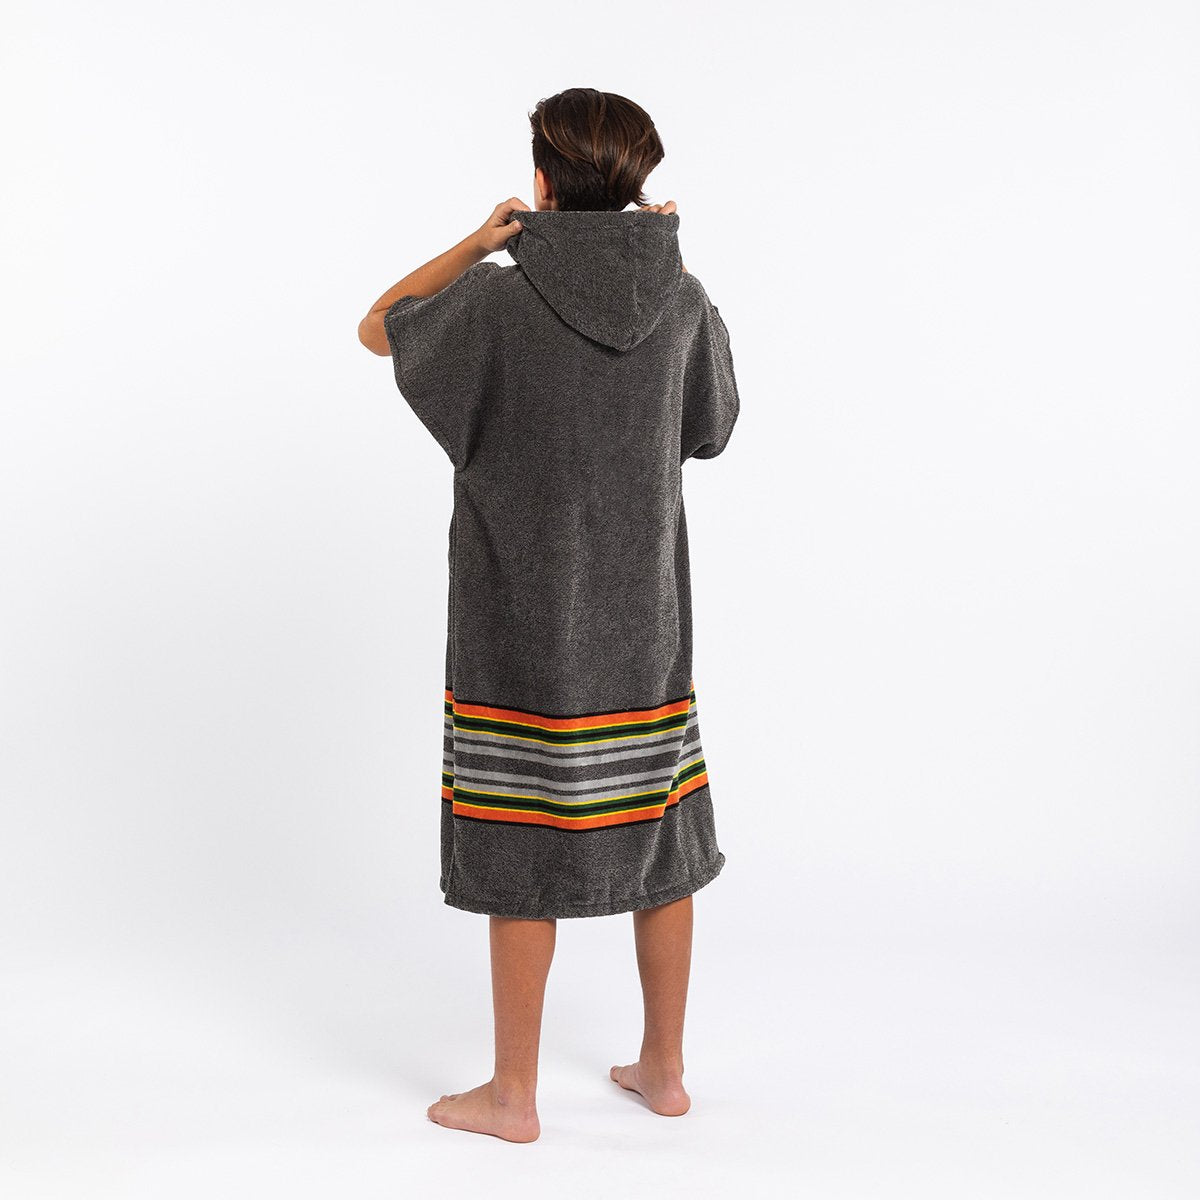 Ranger Changing Poncho - Small